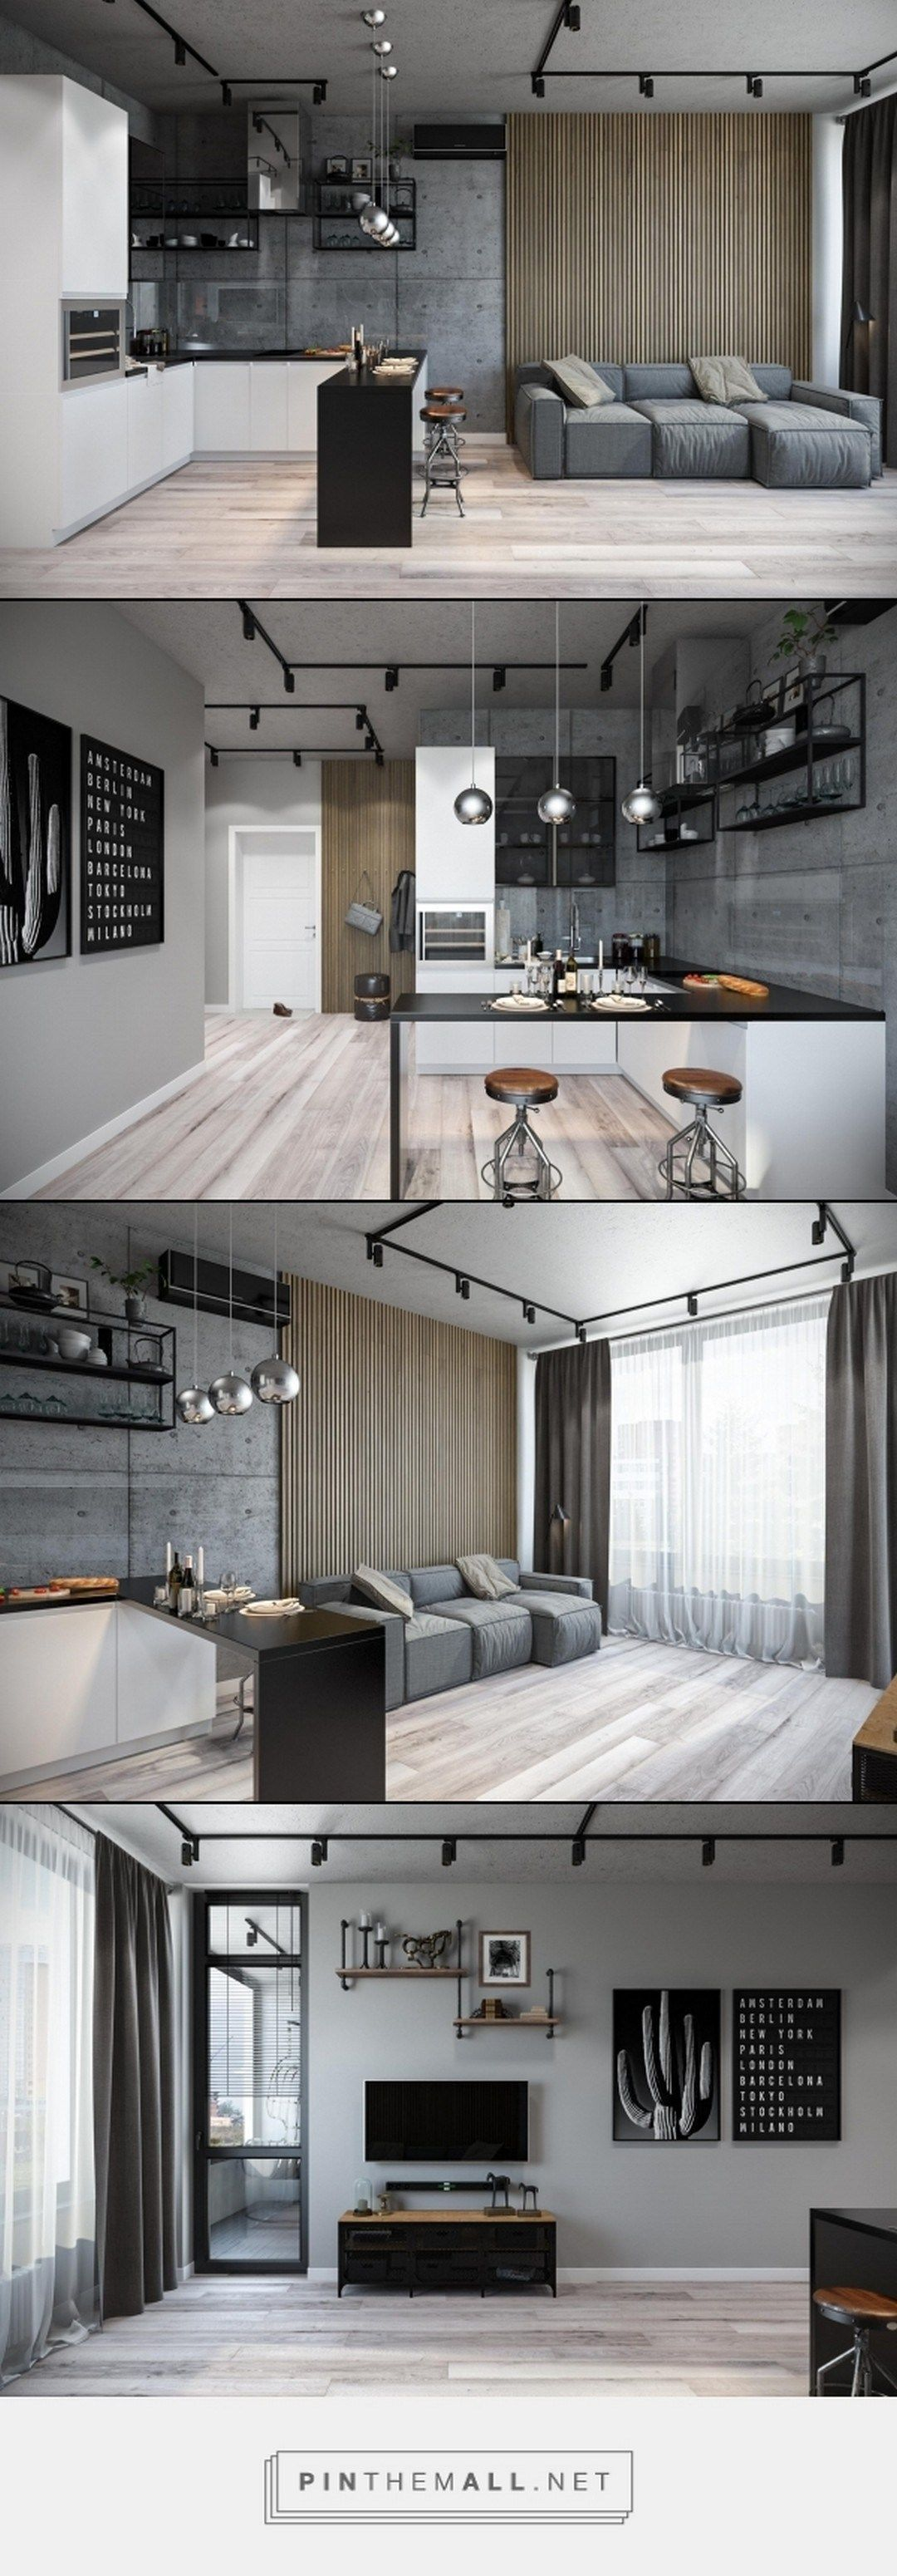 Interior design ideas for your home with the latest inspiration and decor pictures also rh pinterest